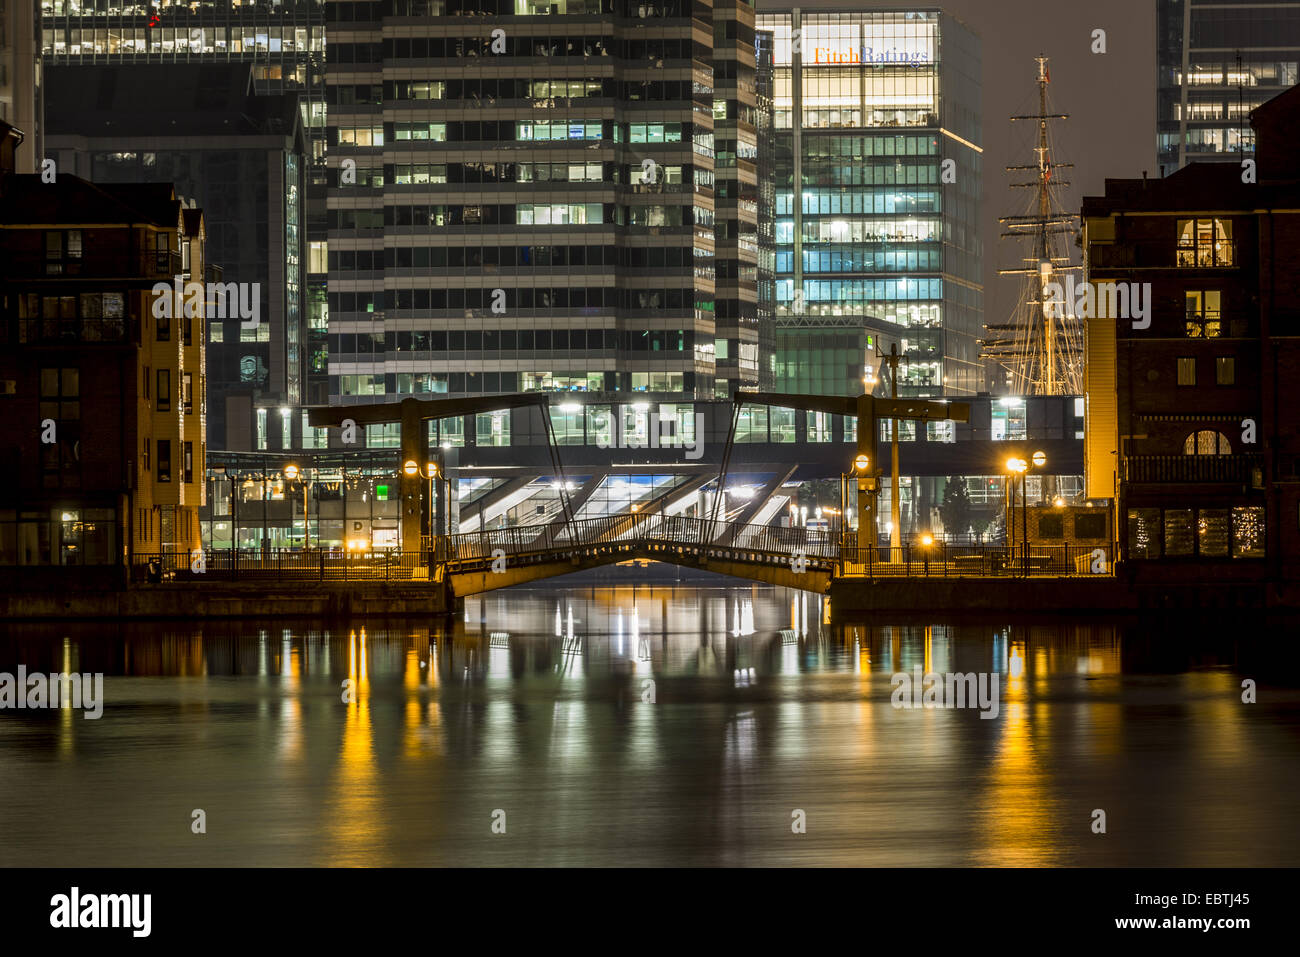 Millwall Dock is a dock at Millwall, south of Canary Wharf on the Isle of Dogs, London. Seen here at night. - Stock Image